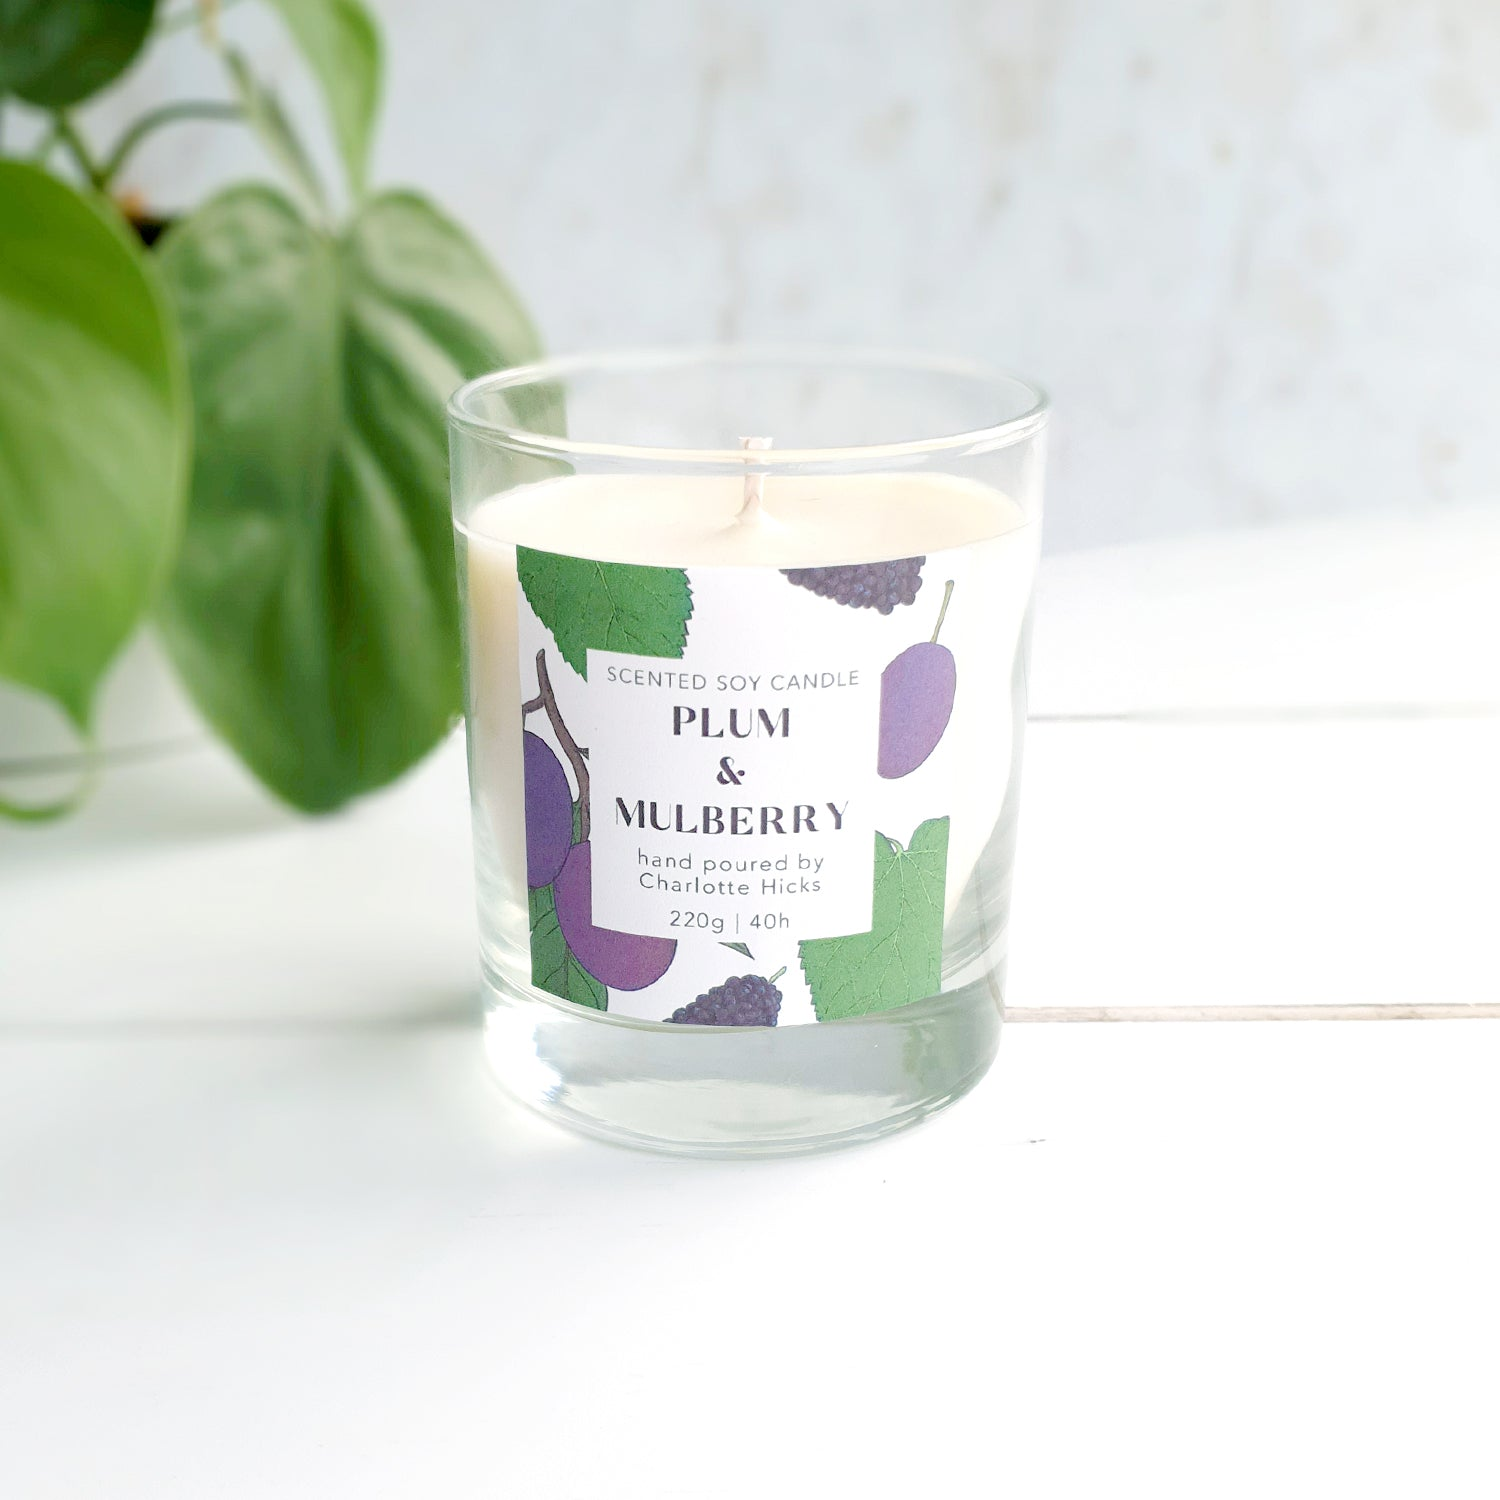 Plum and Mulberry Scented Soy Candle